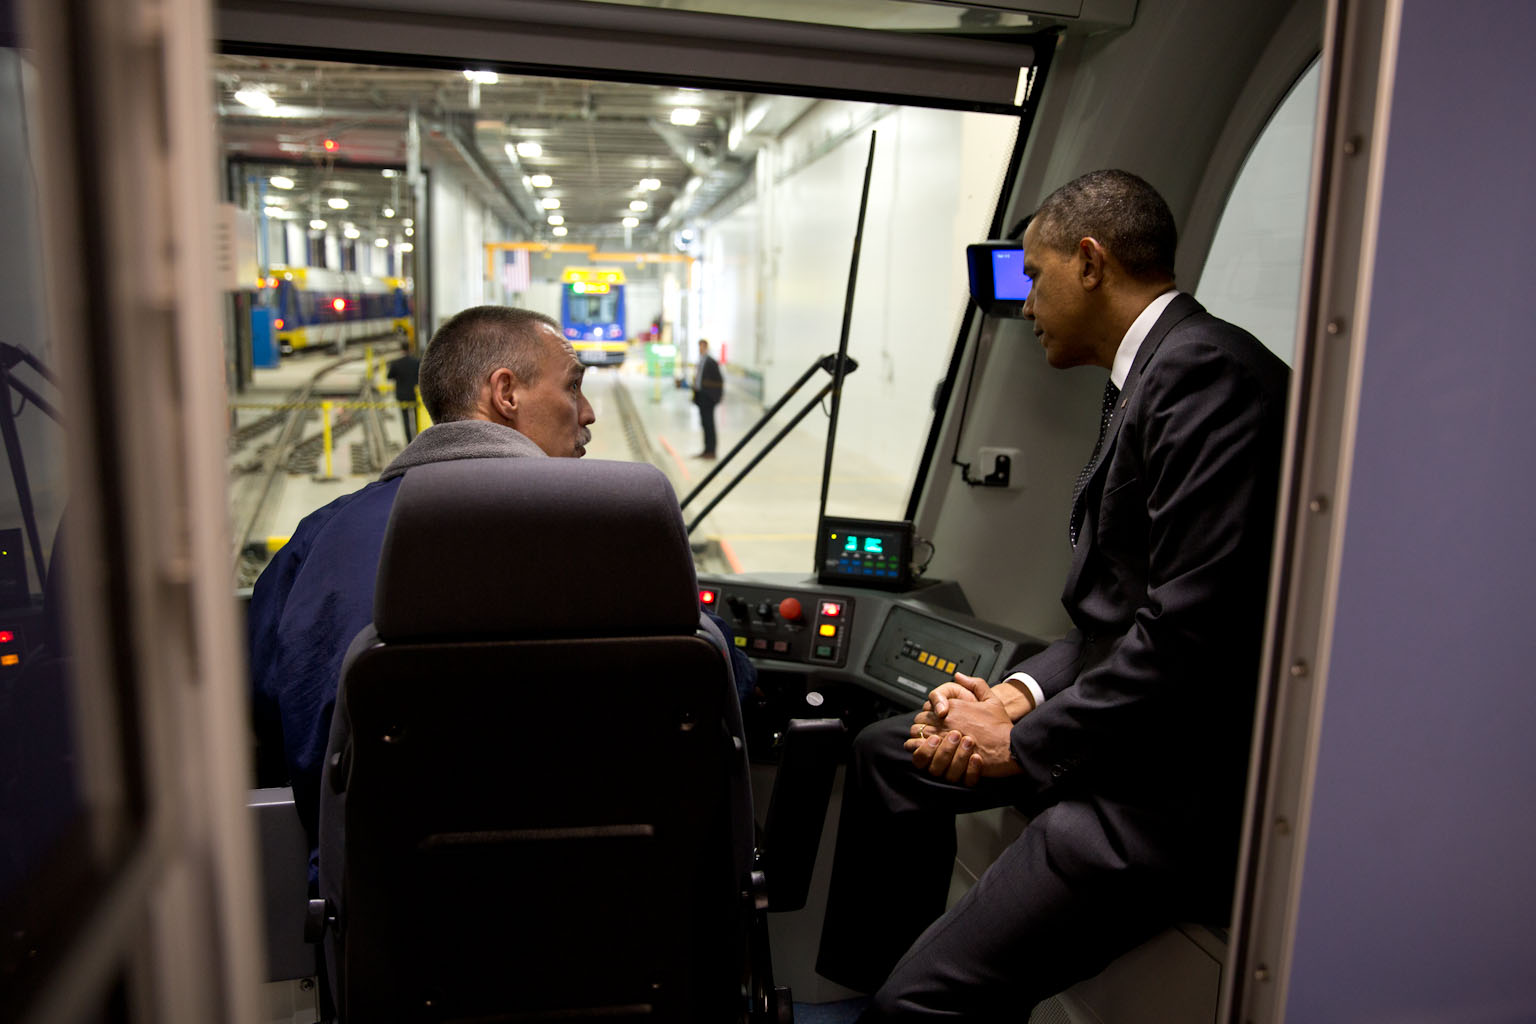 President Barack Obama sits in the cab and talks with a worker during a tour of the Light Rail Maintenance Building in St. Paul, Minn., Feb. 26, 2014.